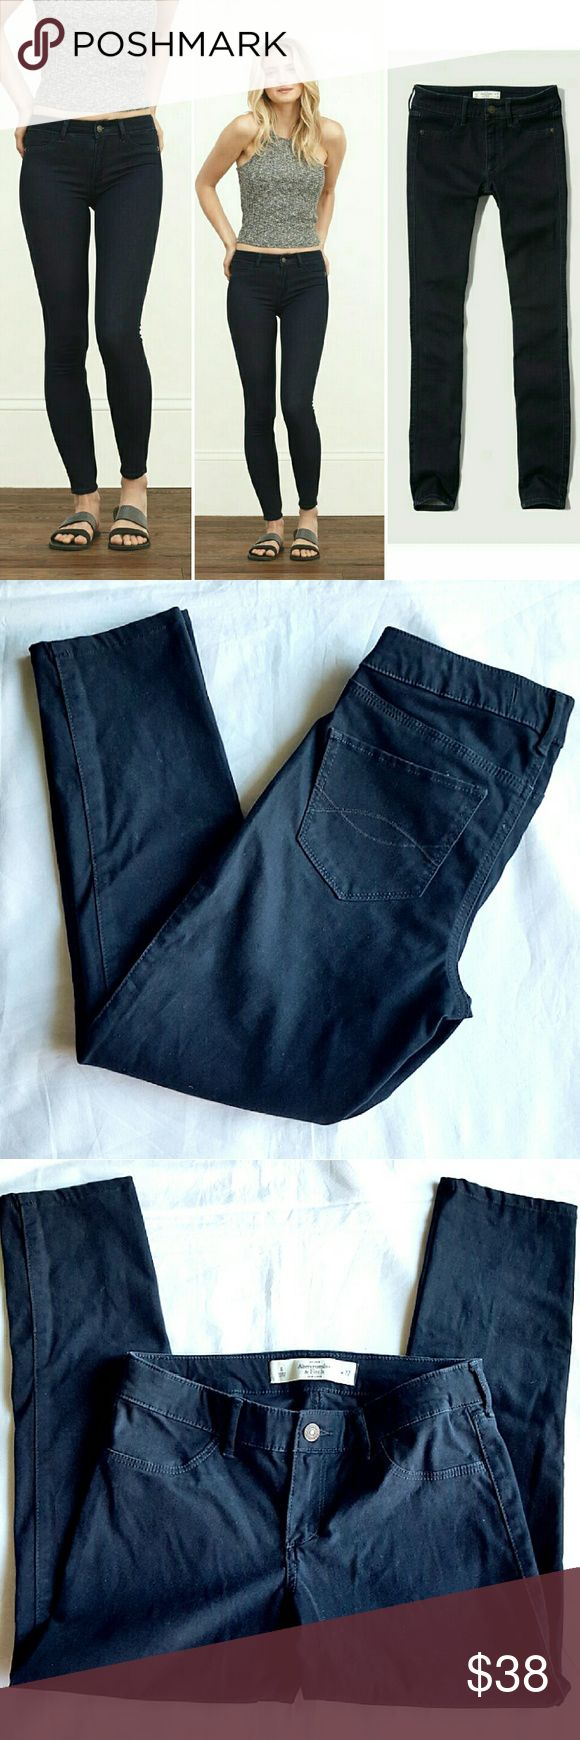 """Abercrombie and Fitch Jean Leggings Supersoft denim with a premium stretch to flatter your figure! Feels like velvet. All-over rich dark color, iconic back pocket stitching, jean legging fit. 80% cotton 17% viscose 3% elastin.  14.5"""" waist,  8"""" rise,  24"""" inseam. Abercrombie & Fitch Jeans Ankle & Cropped"""